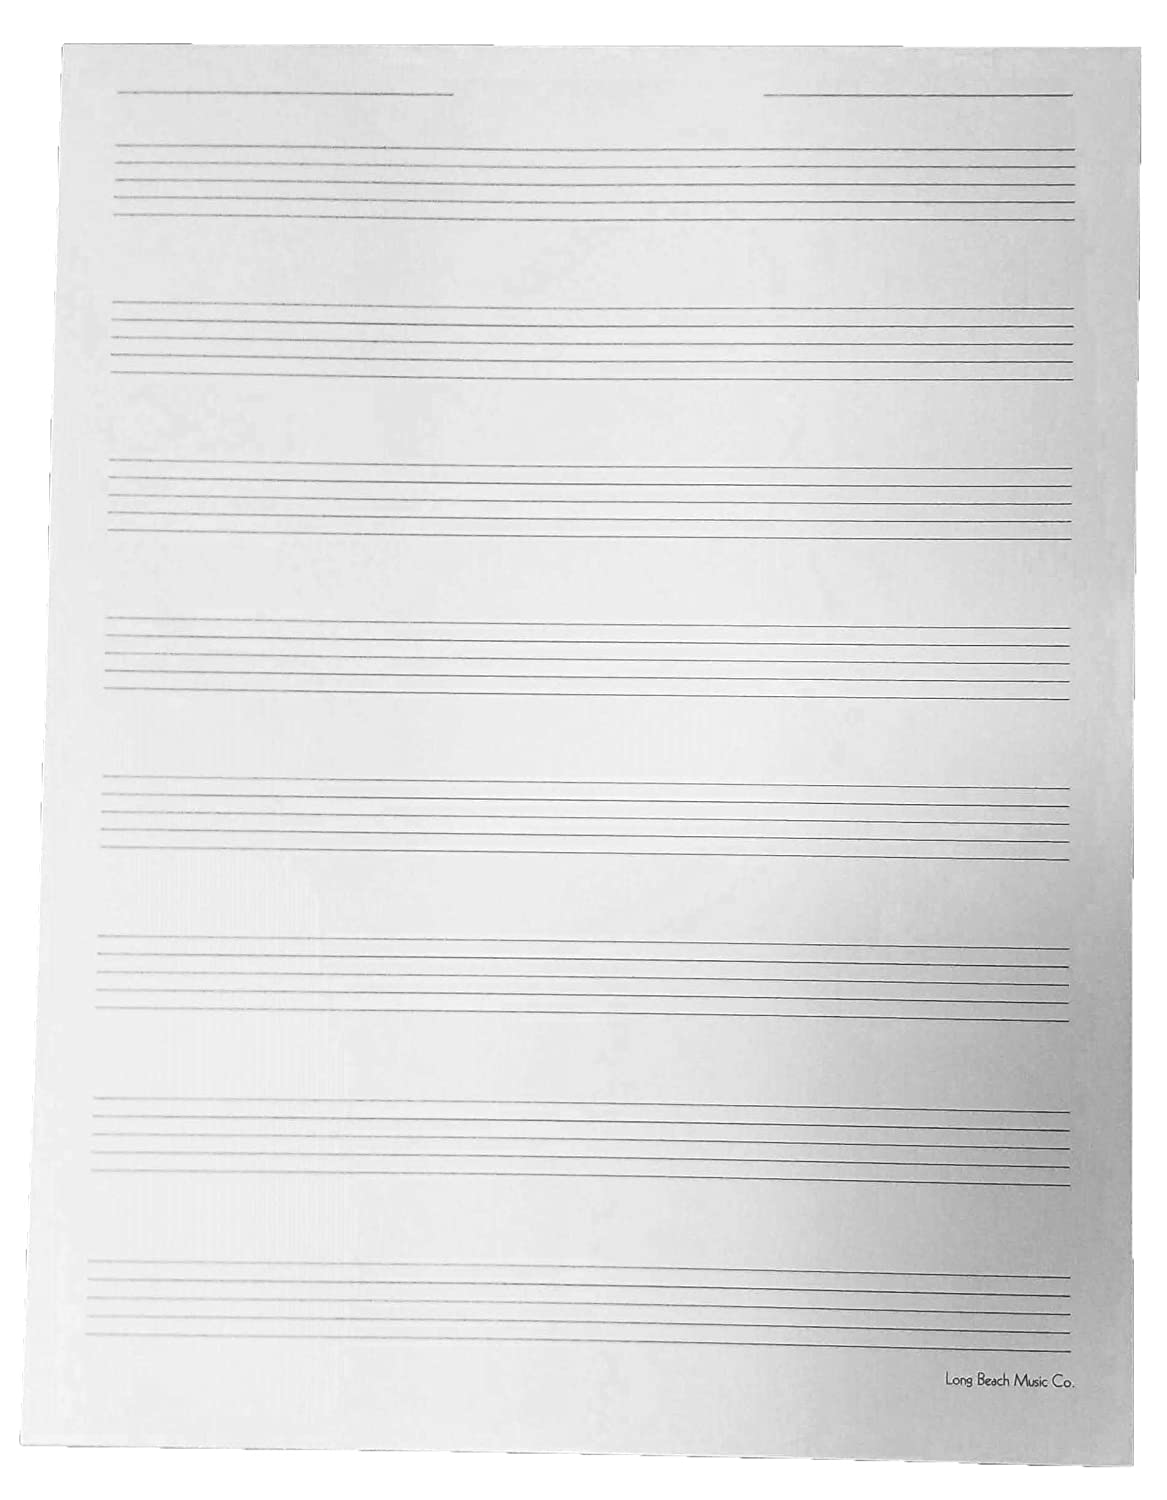 Manuscript Paper 8 Staff Wide Ruled for Sheet Music Composition, Song Writing, Piano Long Beach Music